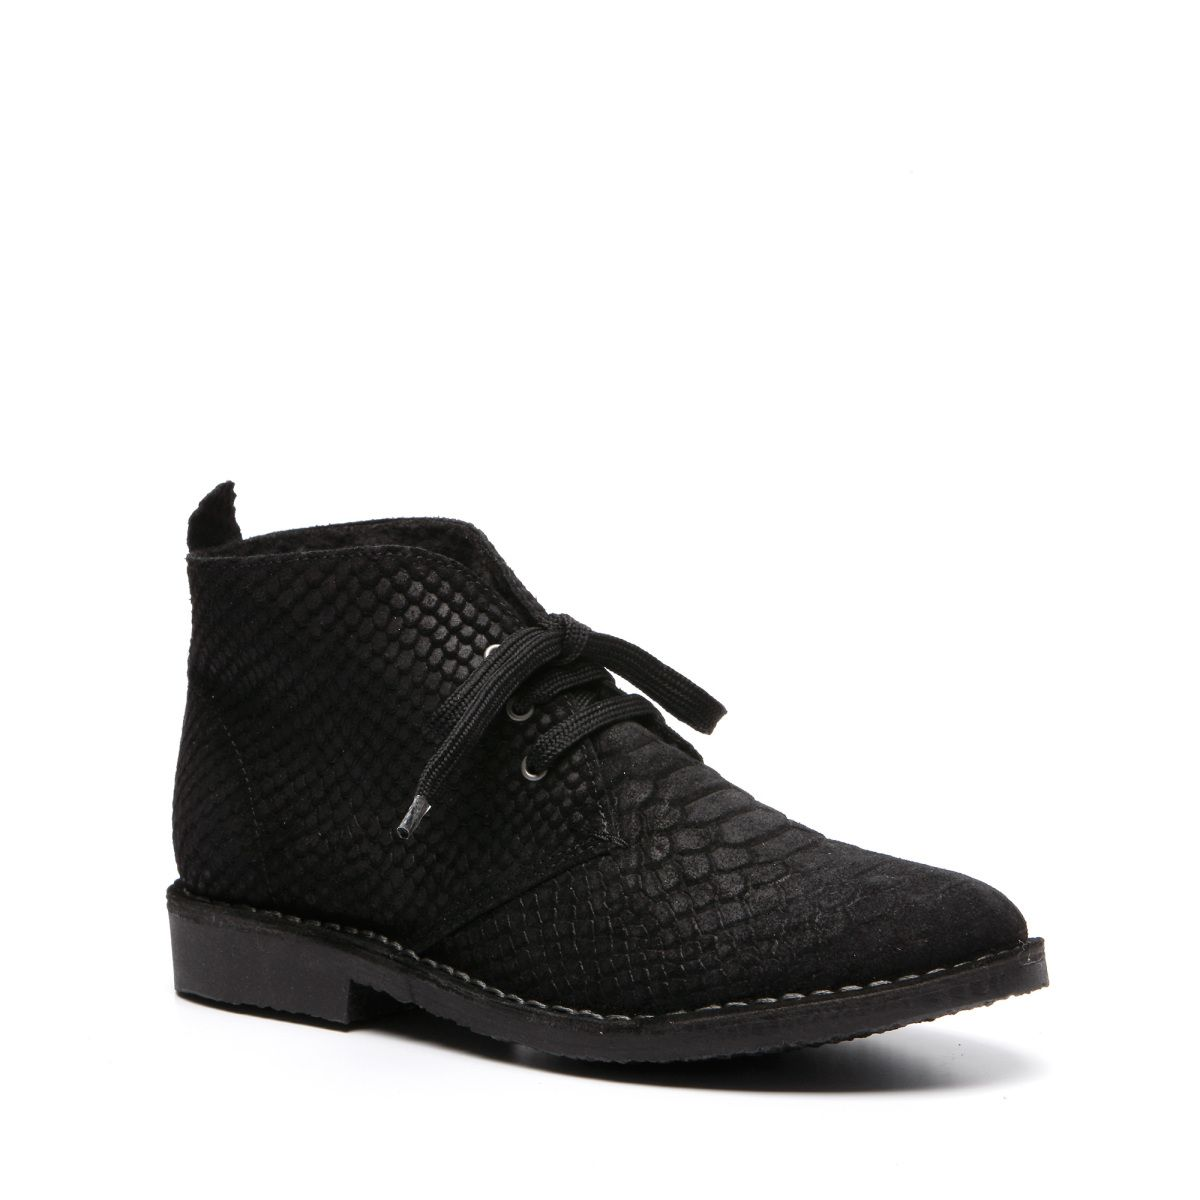 Casual Chaussures Casual Pour Les Hommes Sombres Manfield YmAlRO4